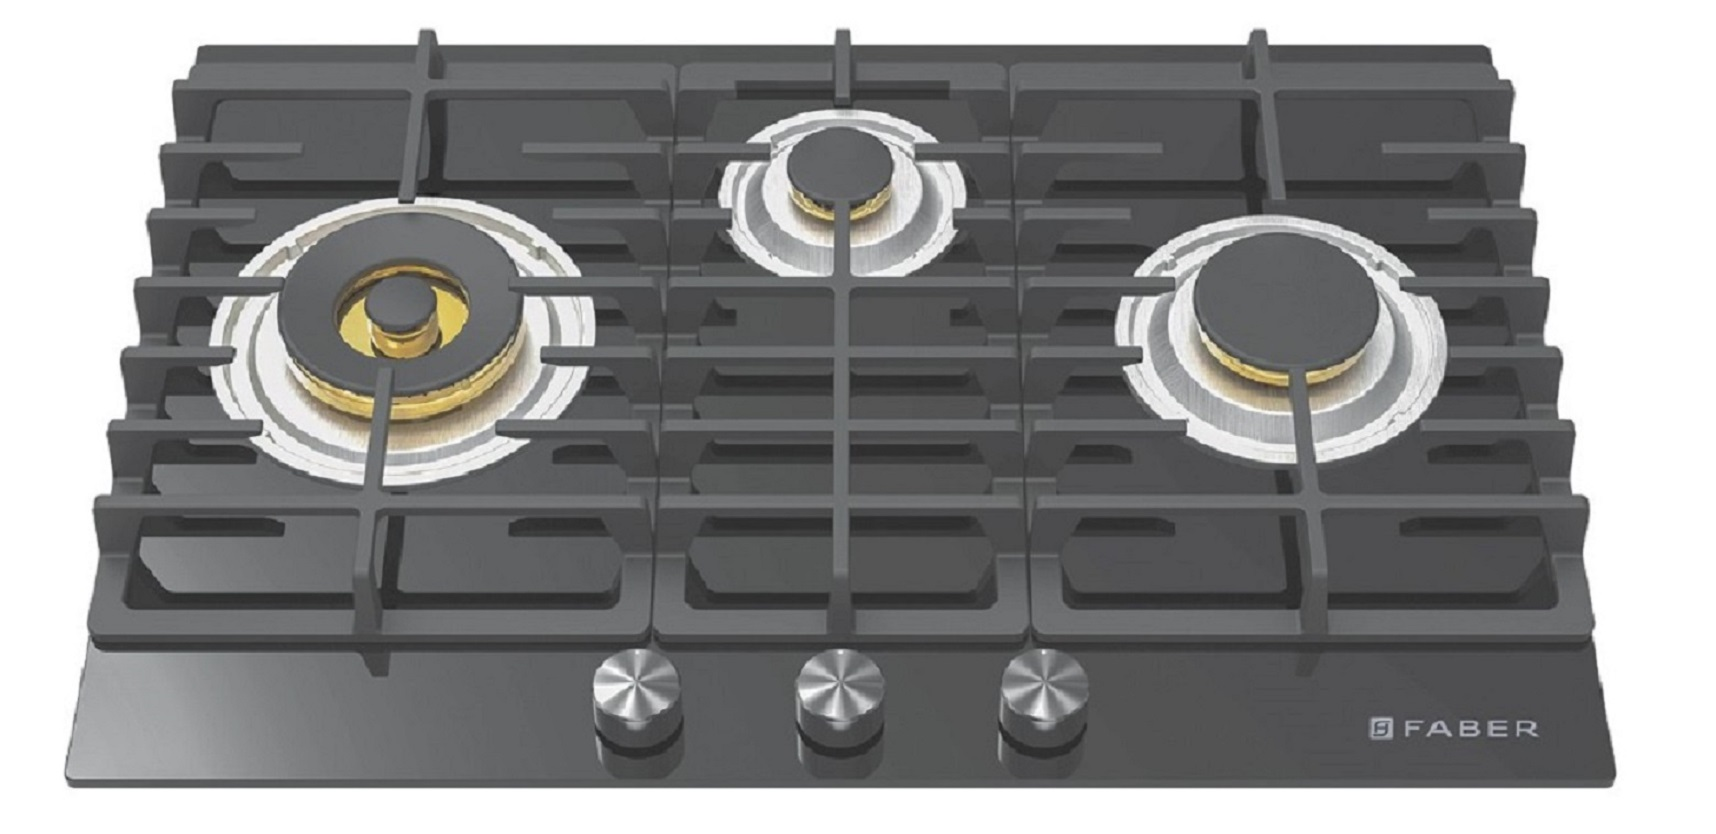 Faber Stainless steel Built- In-Hob Gas FPH 783 BK by HomeTown